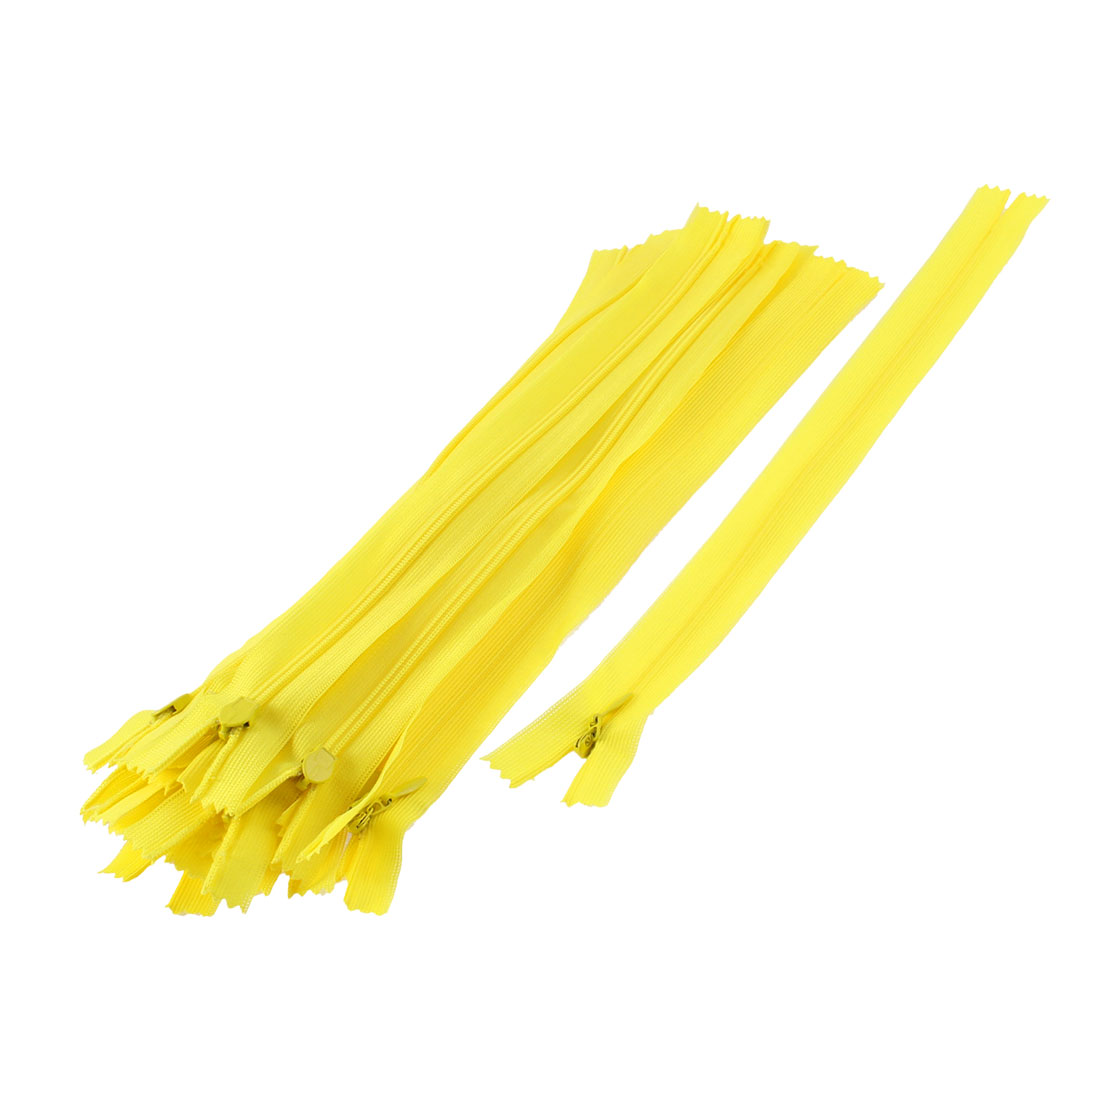 Dress Pants Closed End Nylon Zippers Tailor Sewing Craft Tool Yellow 25cm 20 Pcs